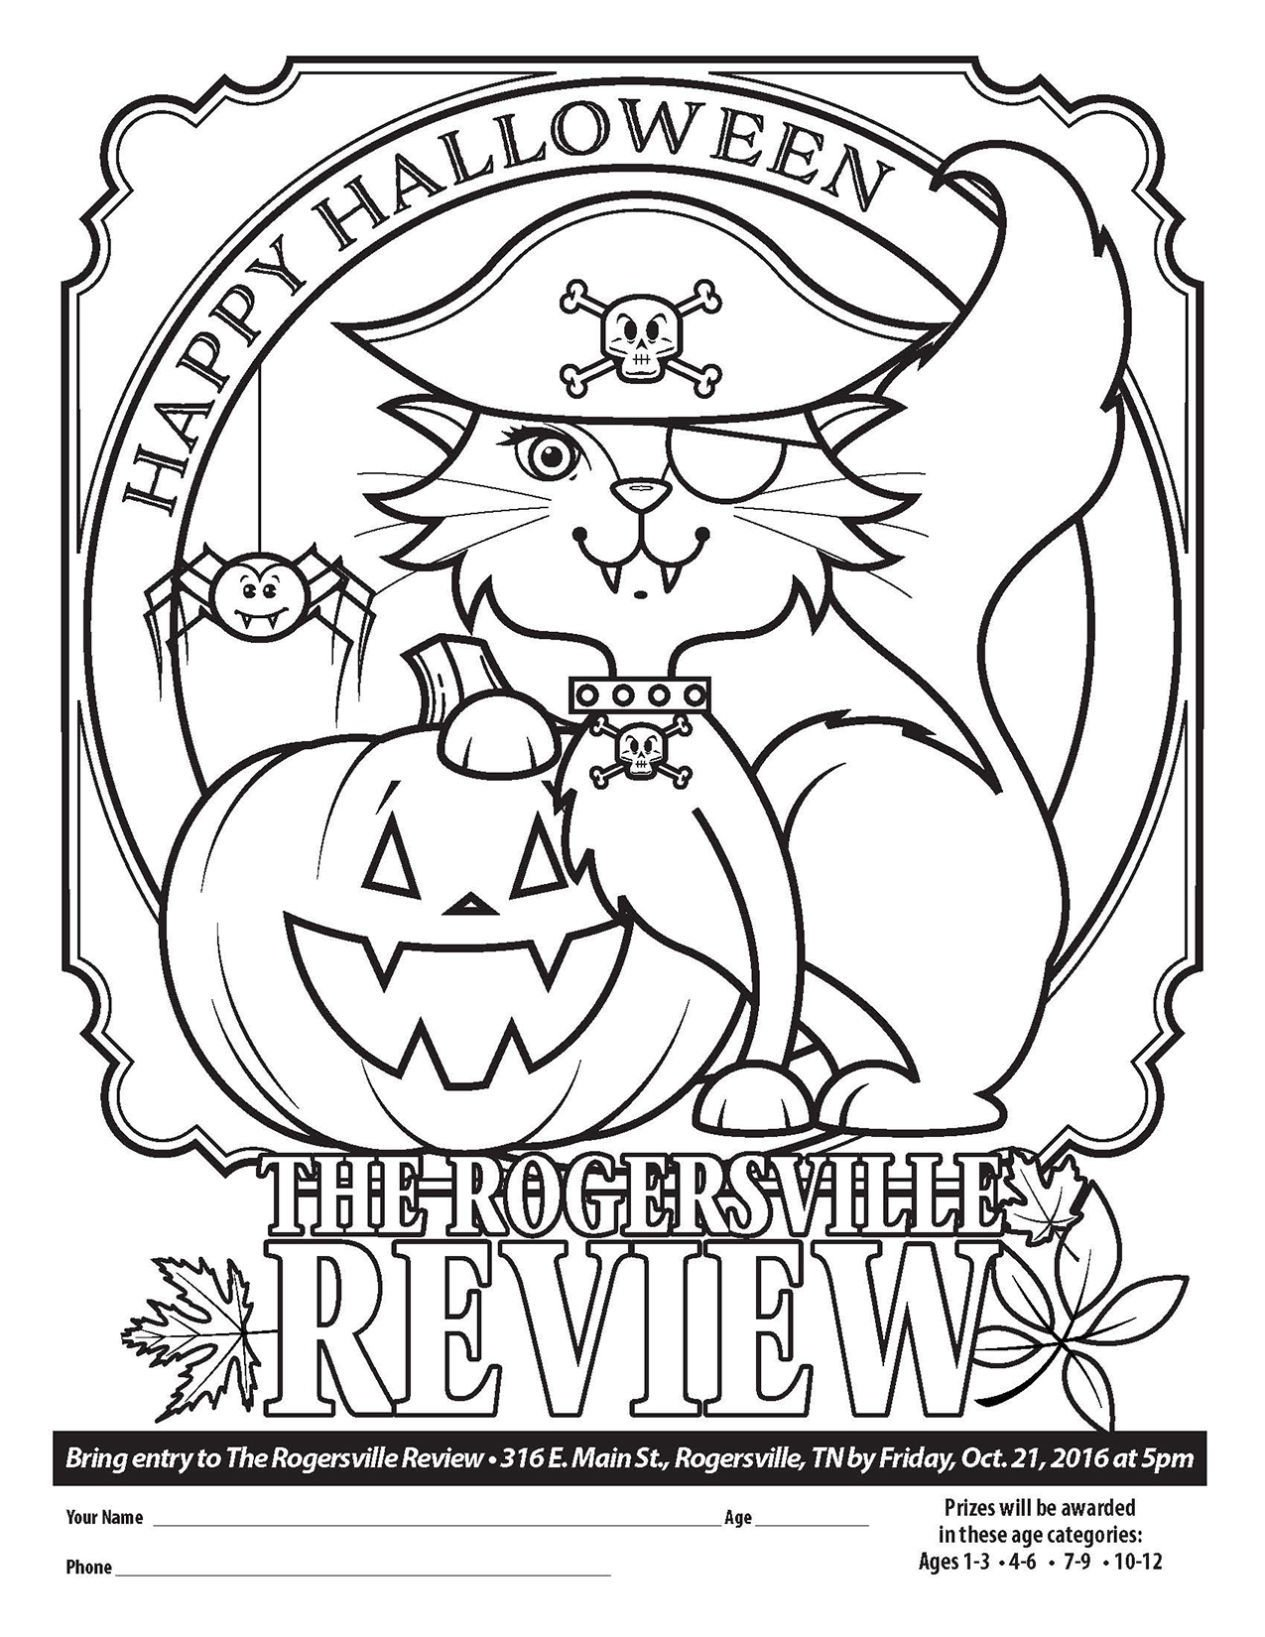 Coloring Pages: Coloring Contest Form